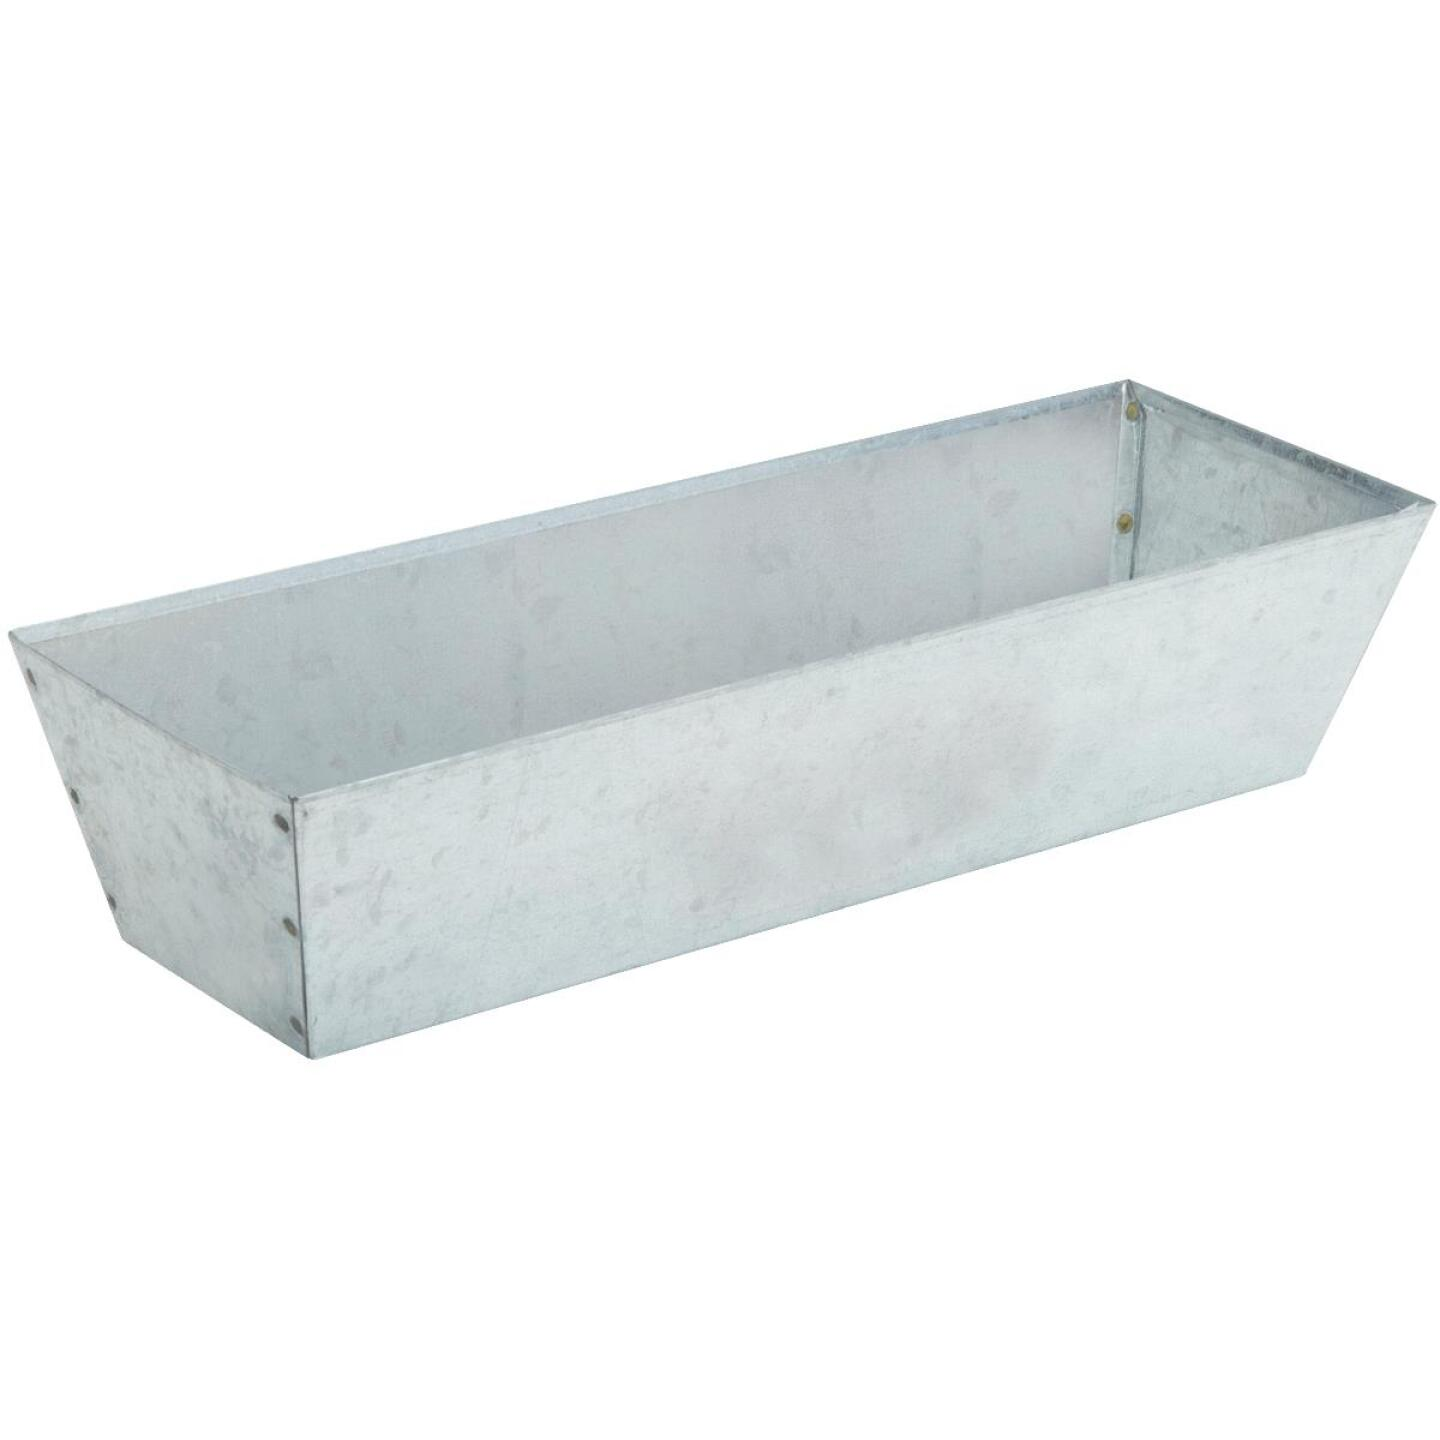 Do it 14 In. Galvanized Steel Mud Pan Image 1